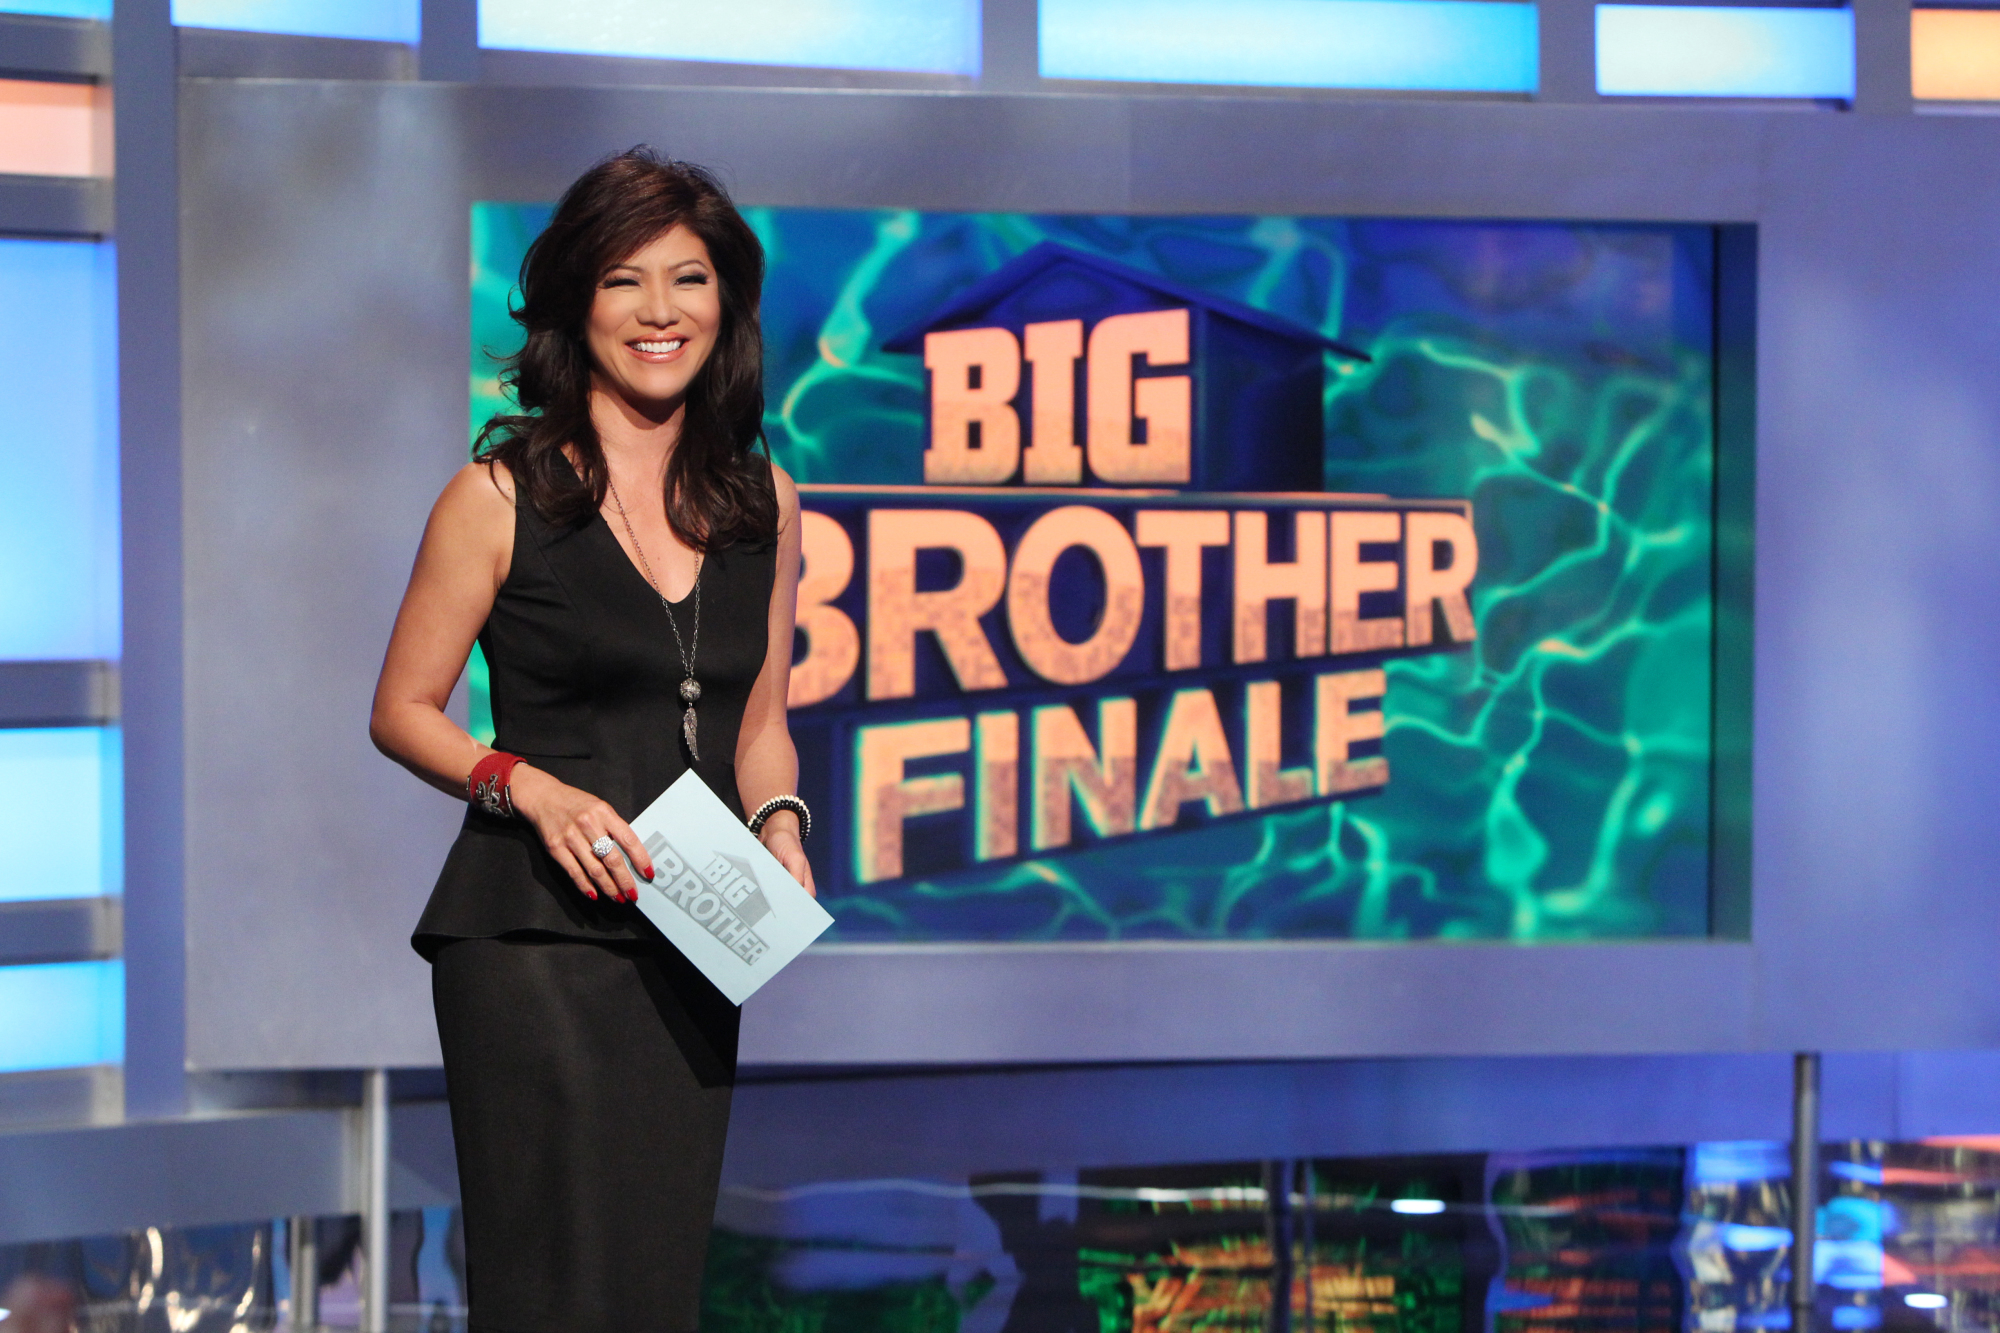 Julie at the Big Brother finale